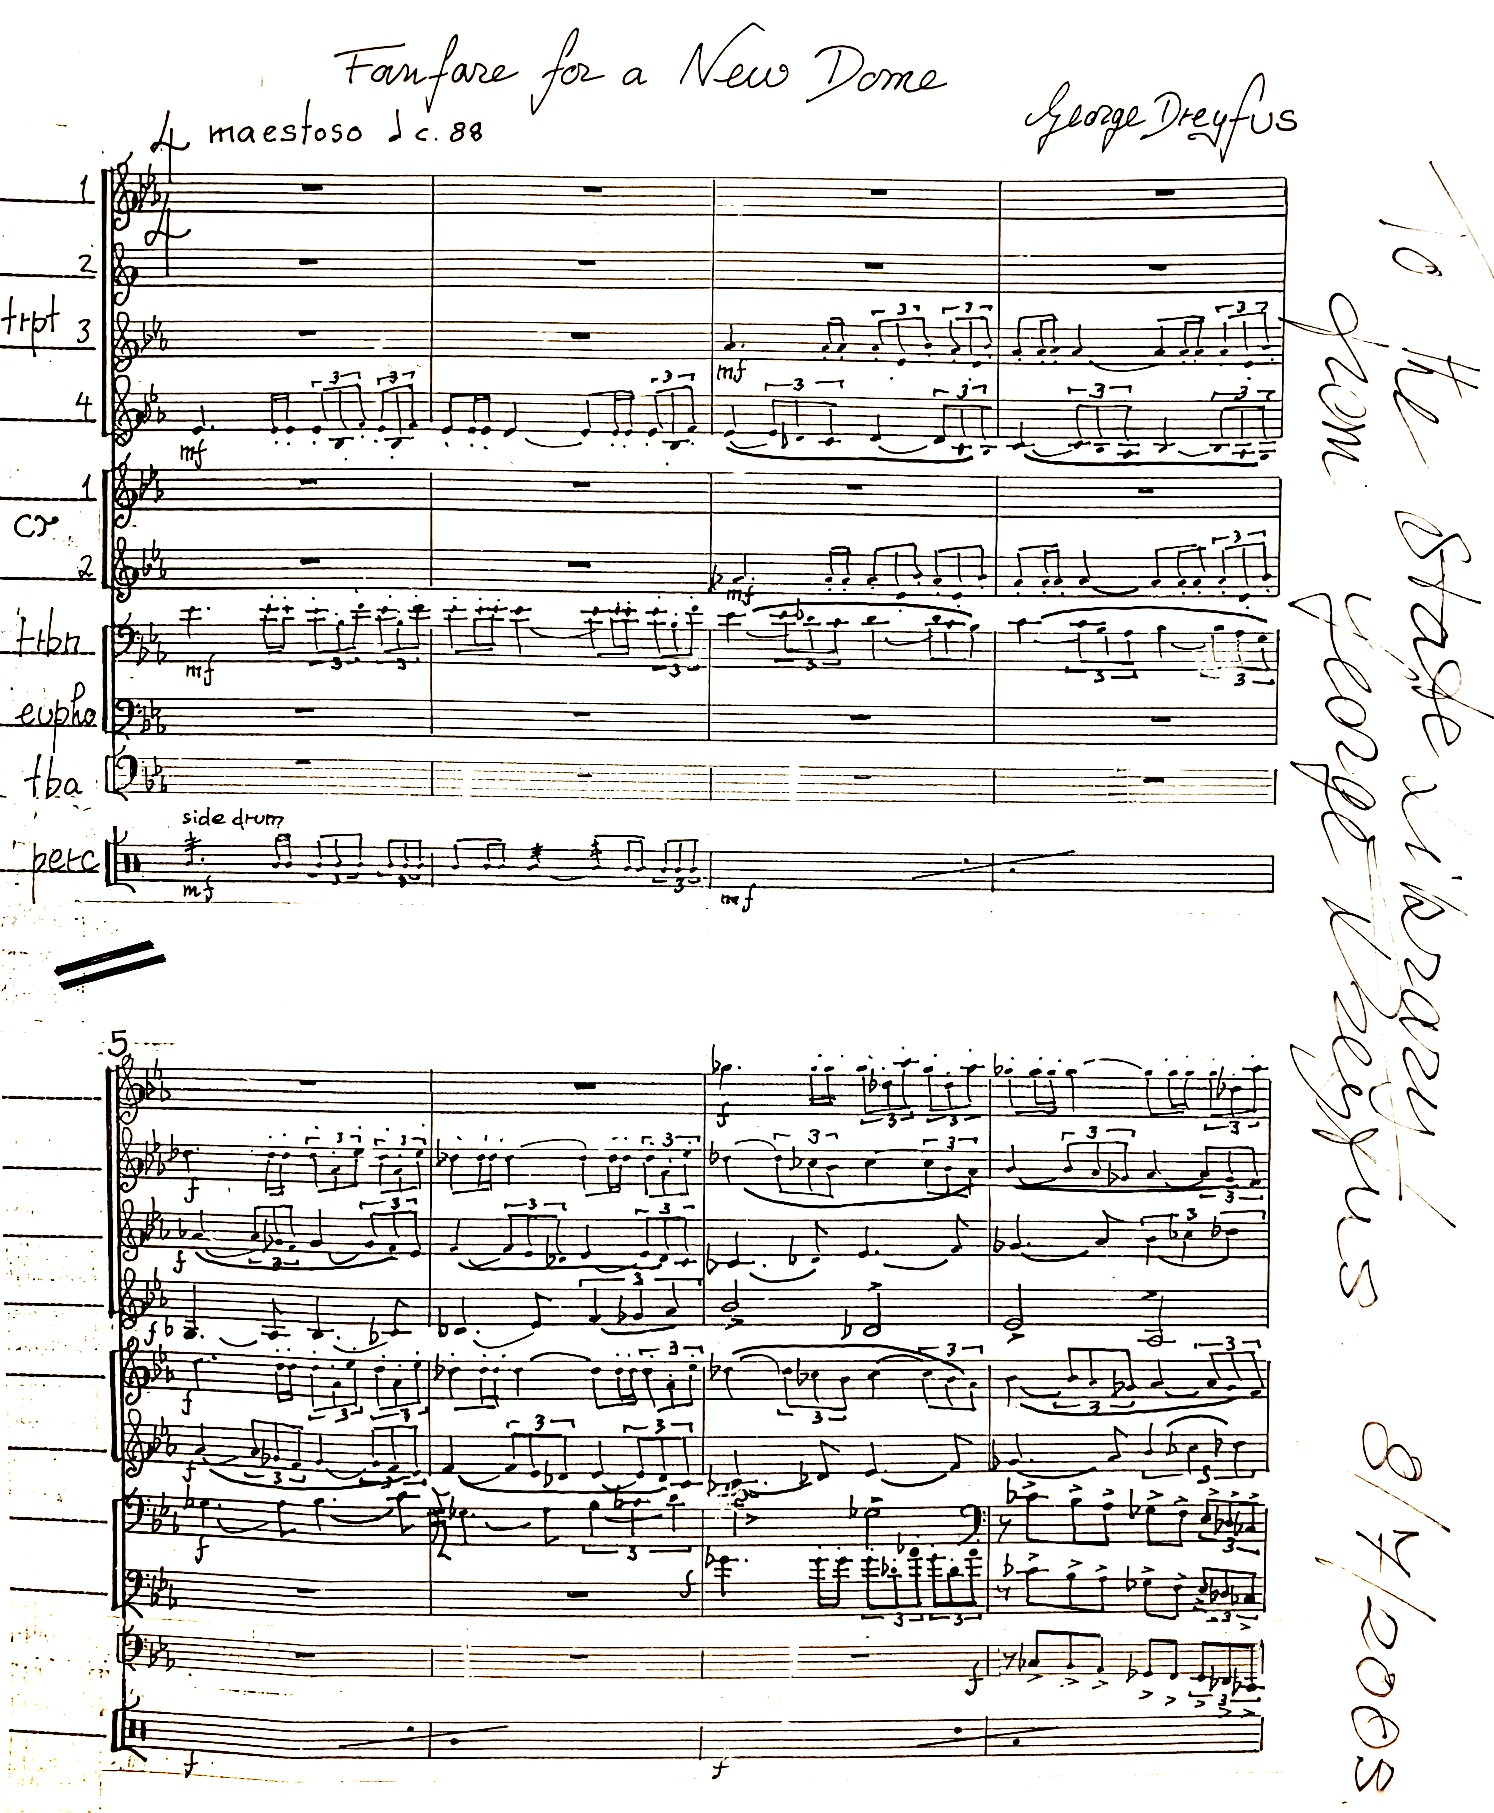 First page of music score 'Fanfare for a new dome'